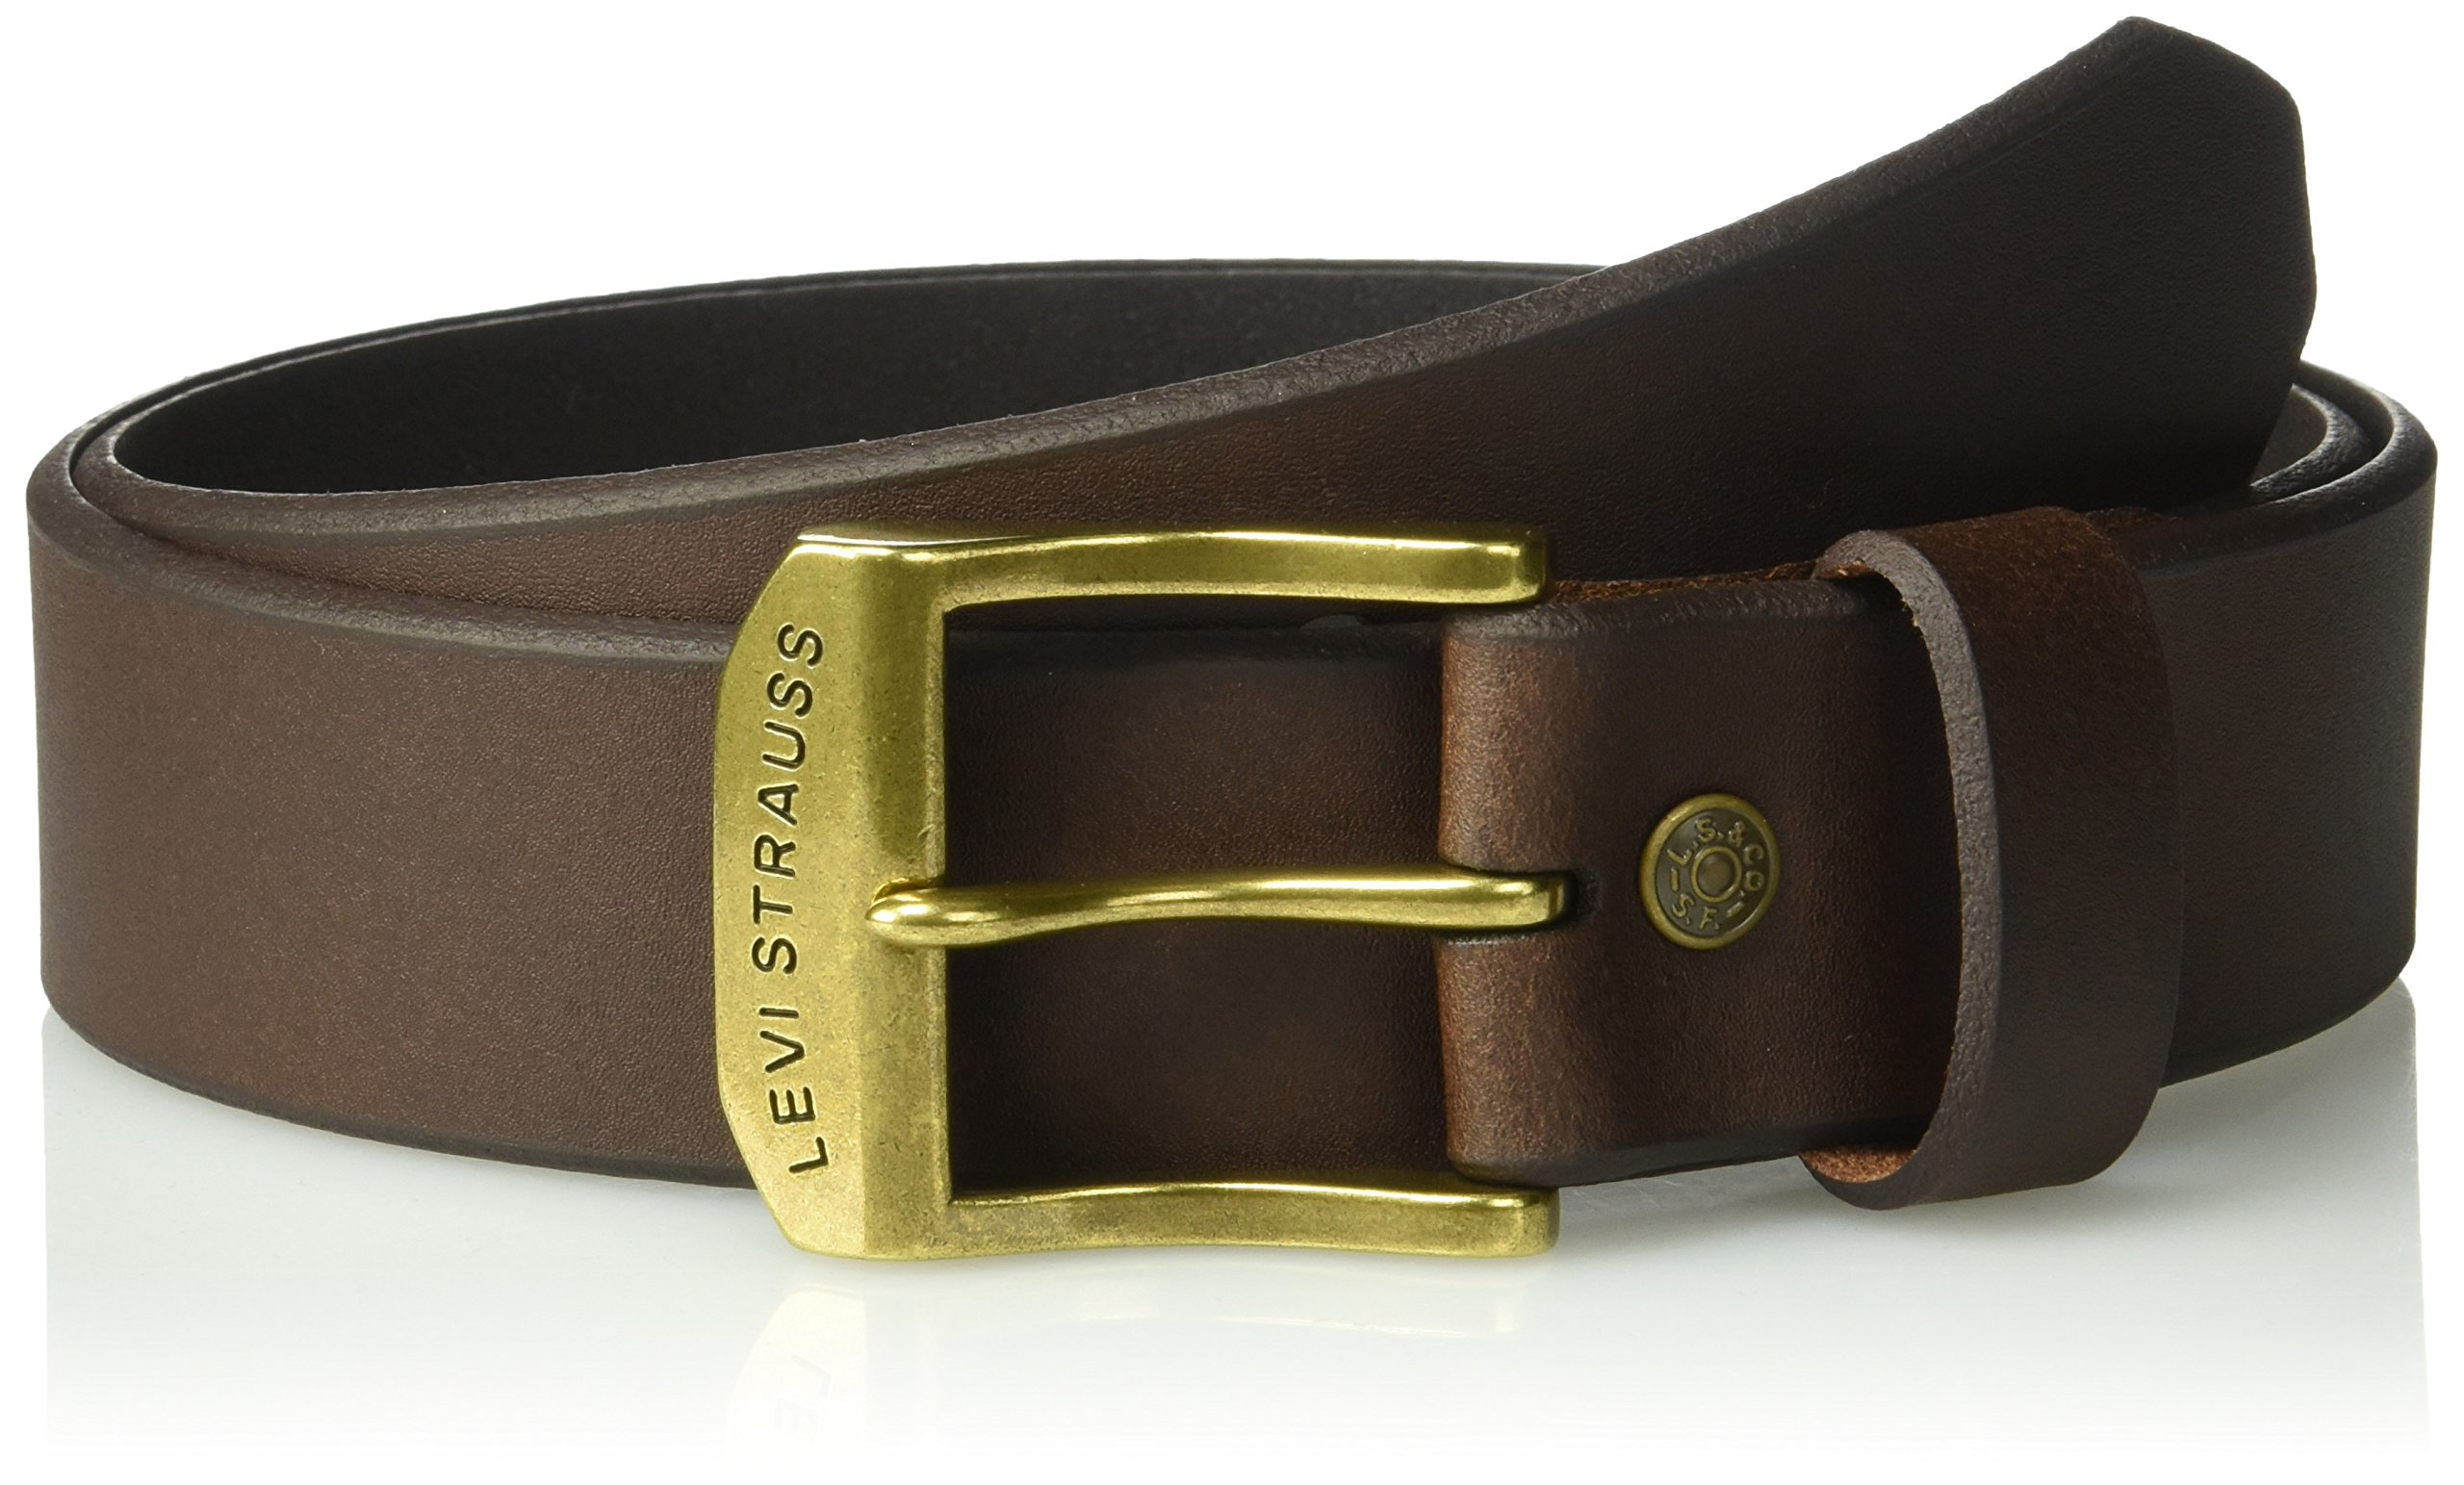 Levi's Men's 100% Leather Belt  with Prong Buckle, Brown, 36